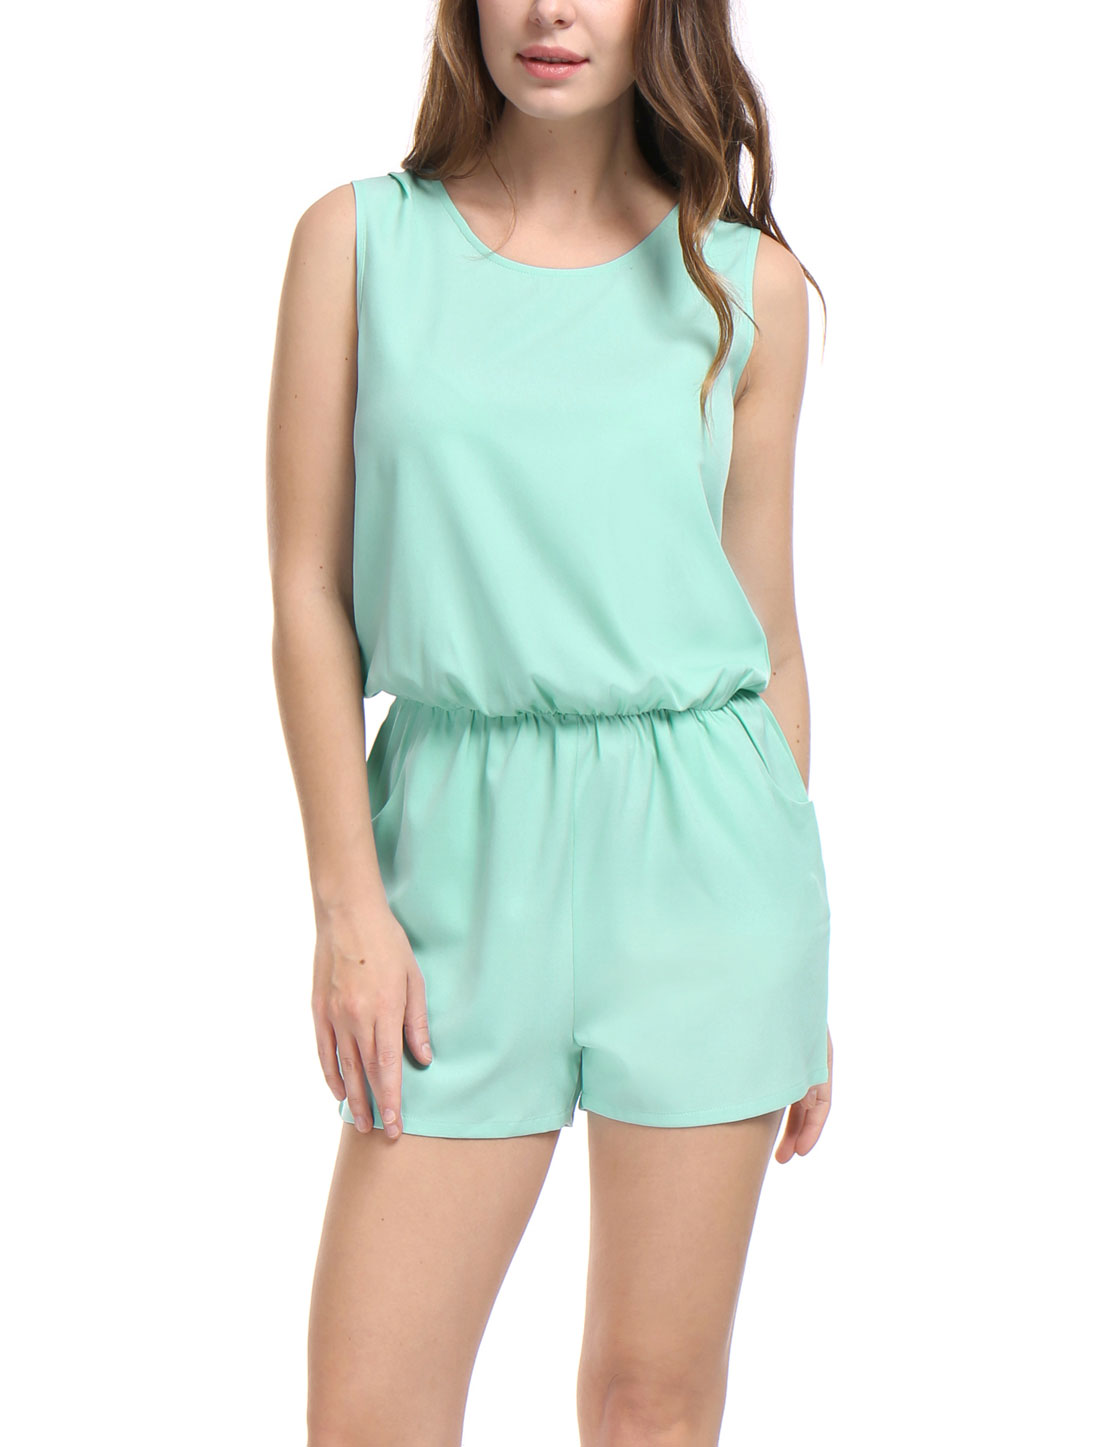 Women Sleeveless Cut Out Back Elastic Waist Romper Green S